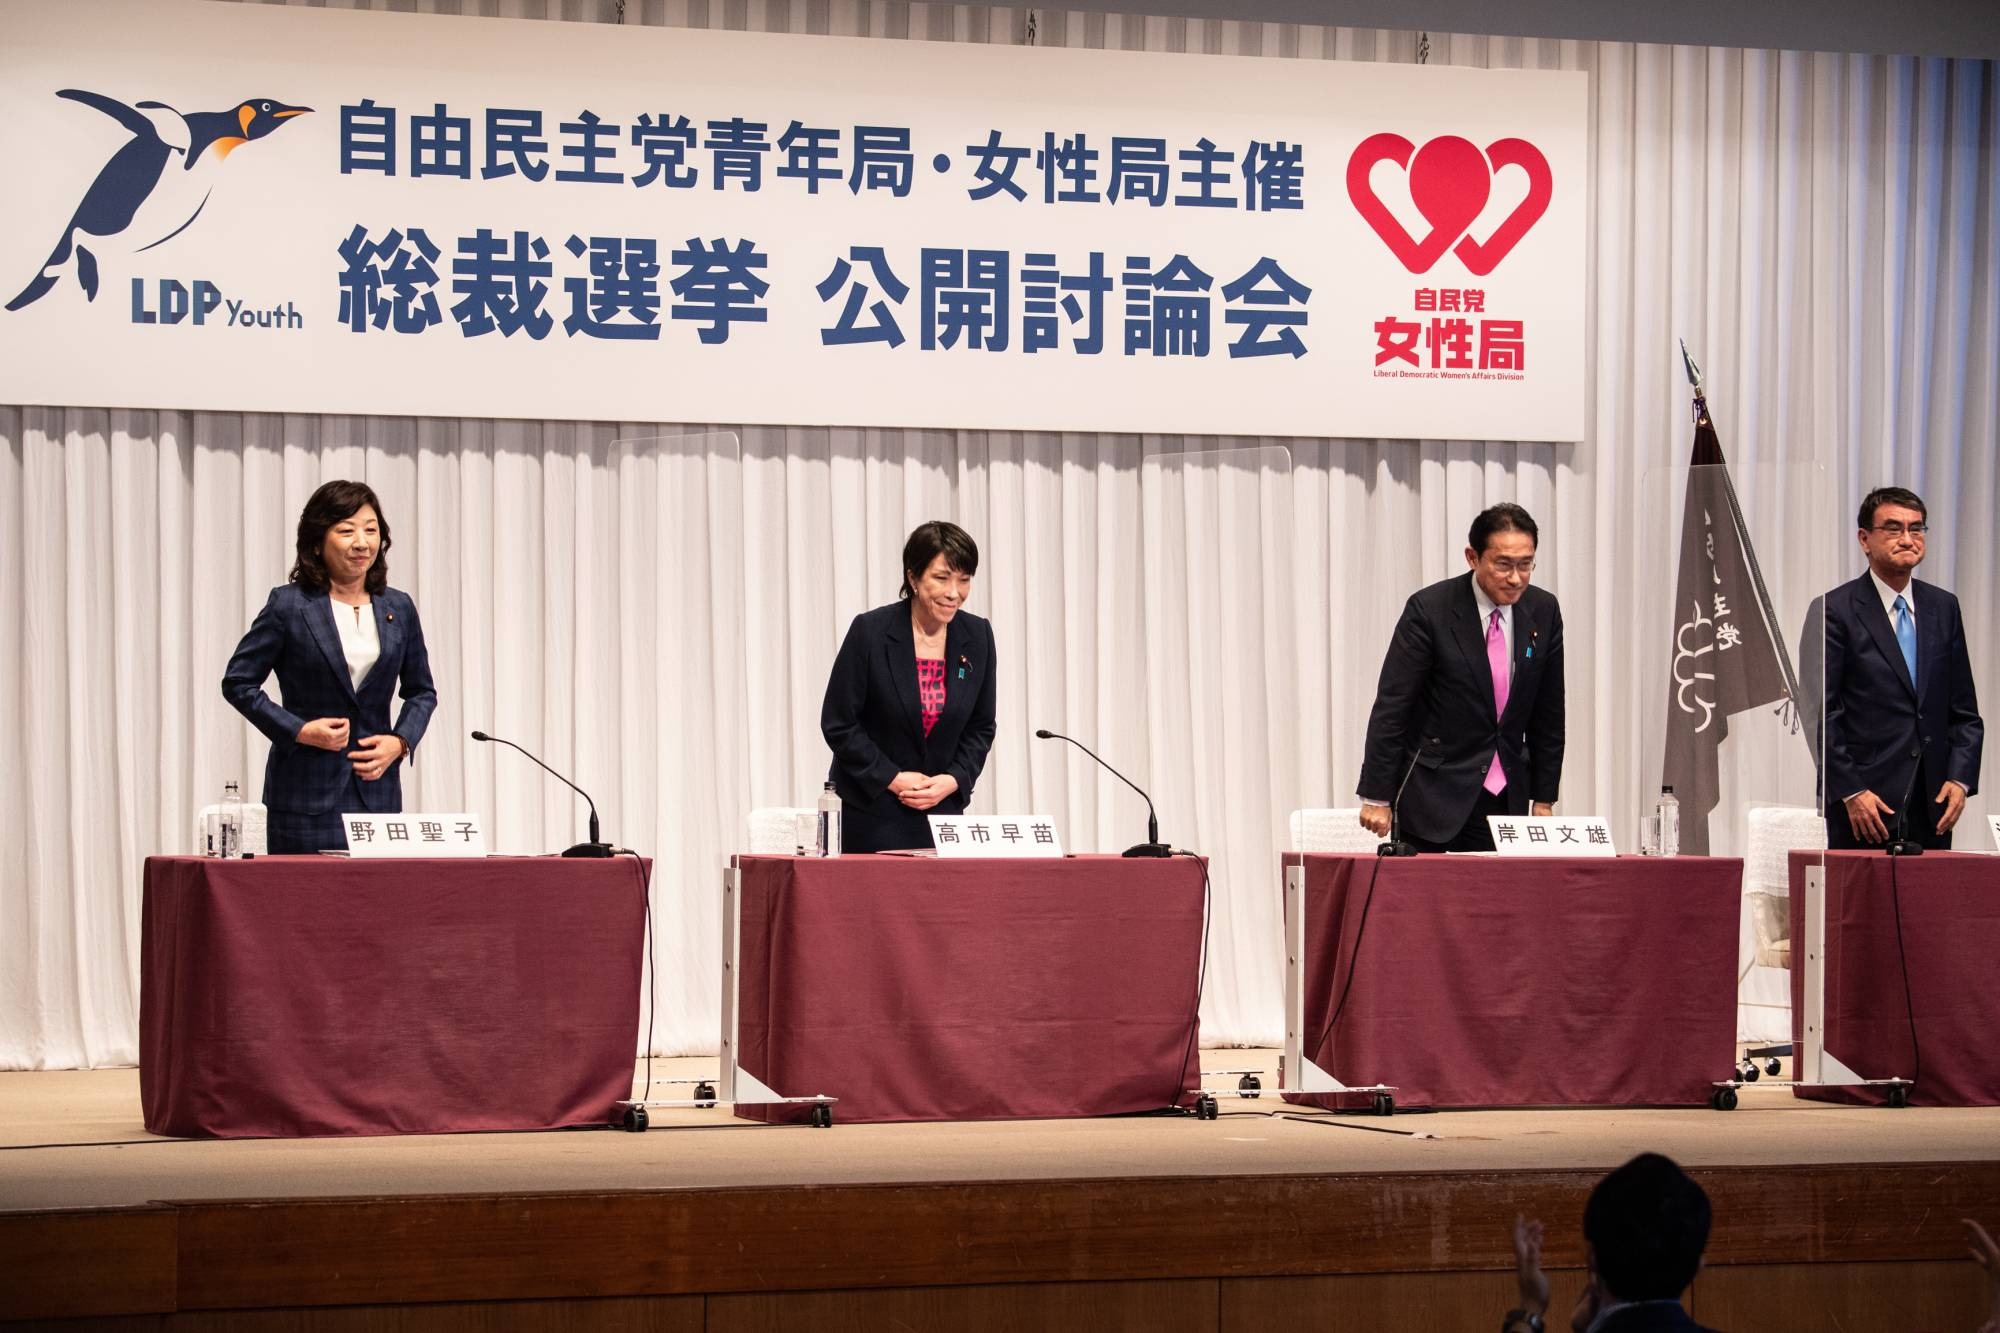 Seiko Noda (from left to right), Sanae Takaichi, Fumio Kishida and Taro Kono, the four contenders running in the Sept. 29 Liberal Democratic Party leadership election, attend a debate organized by the party in Tokyo on Monday. | POOL / VIA BLOOMBERG